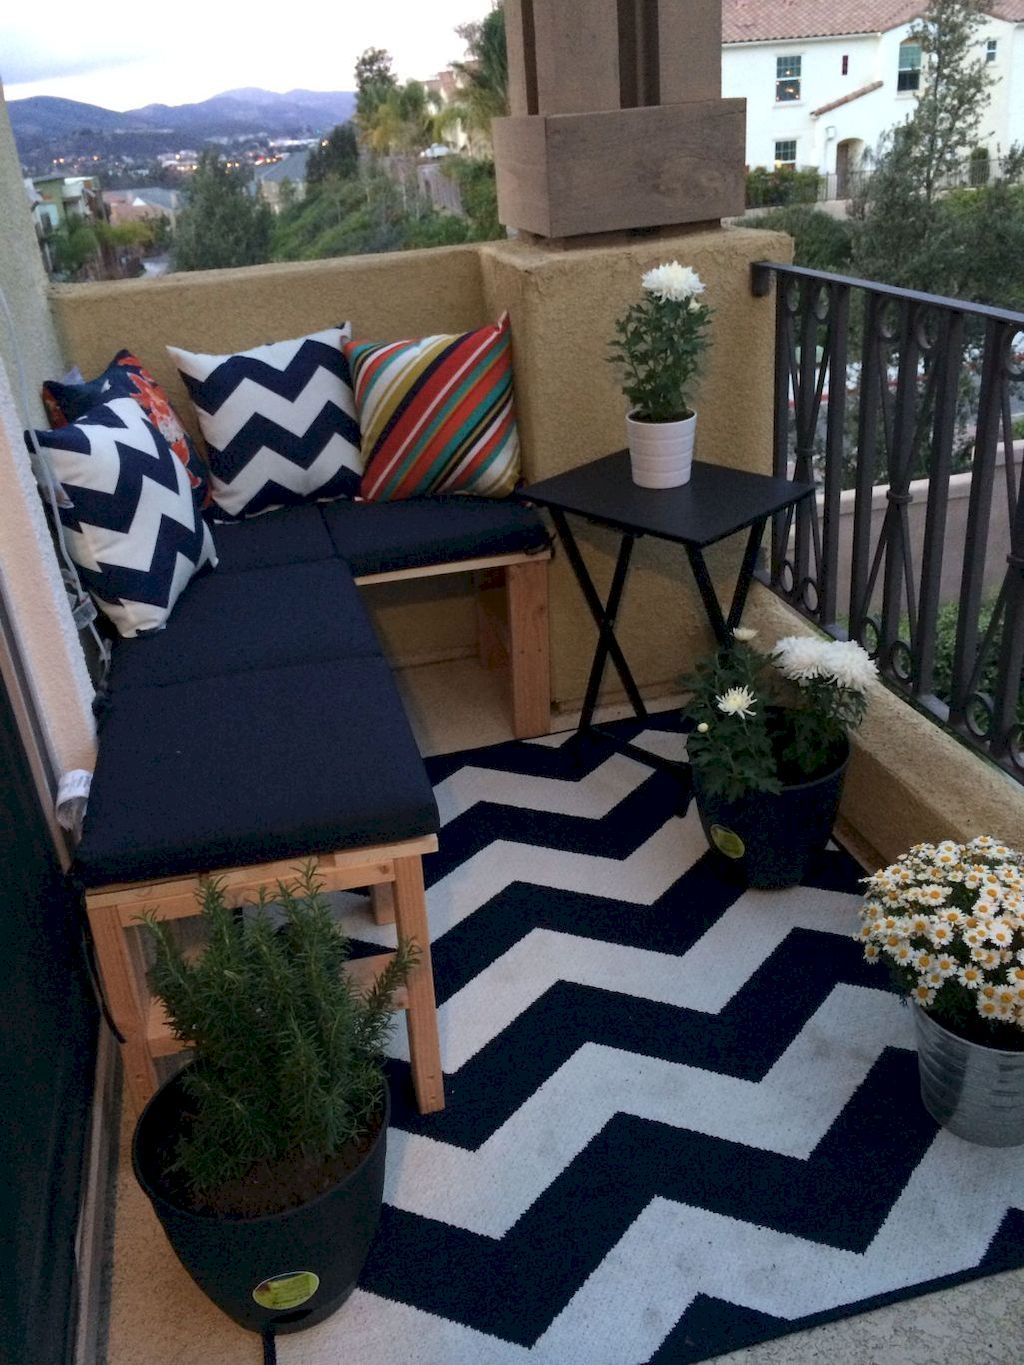 Cool 80 Cozy Apartment Balcony Decorating Ideas On A Budget Https Quitdecor